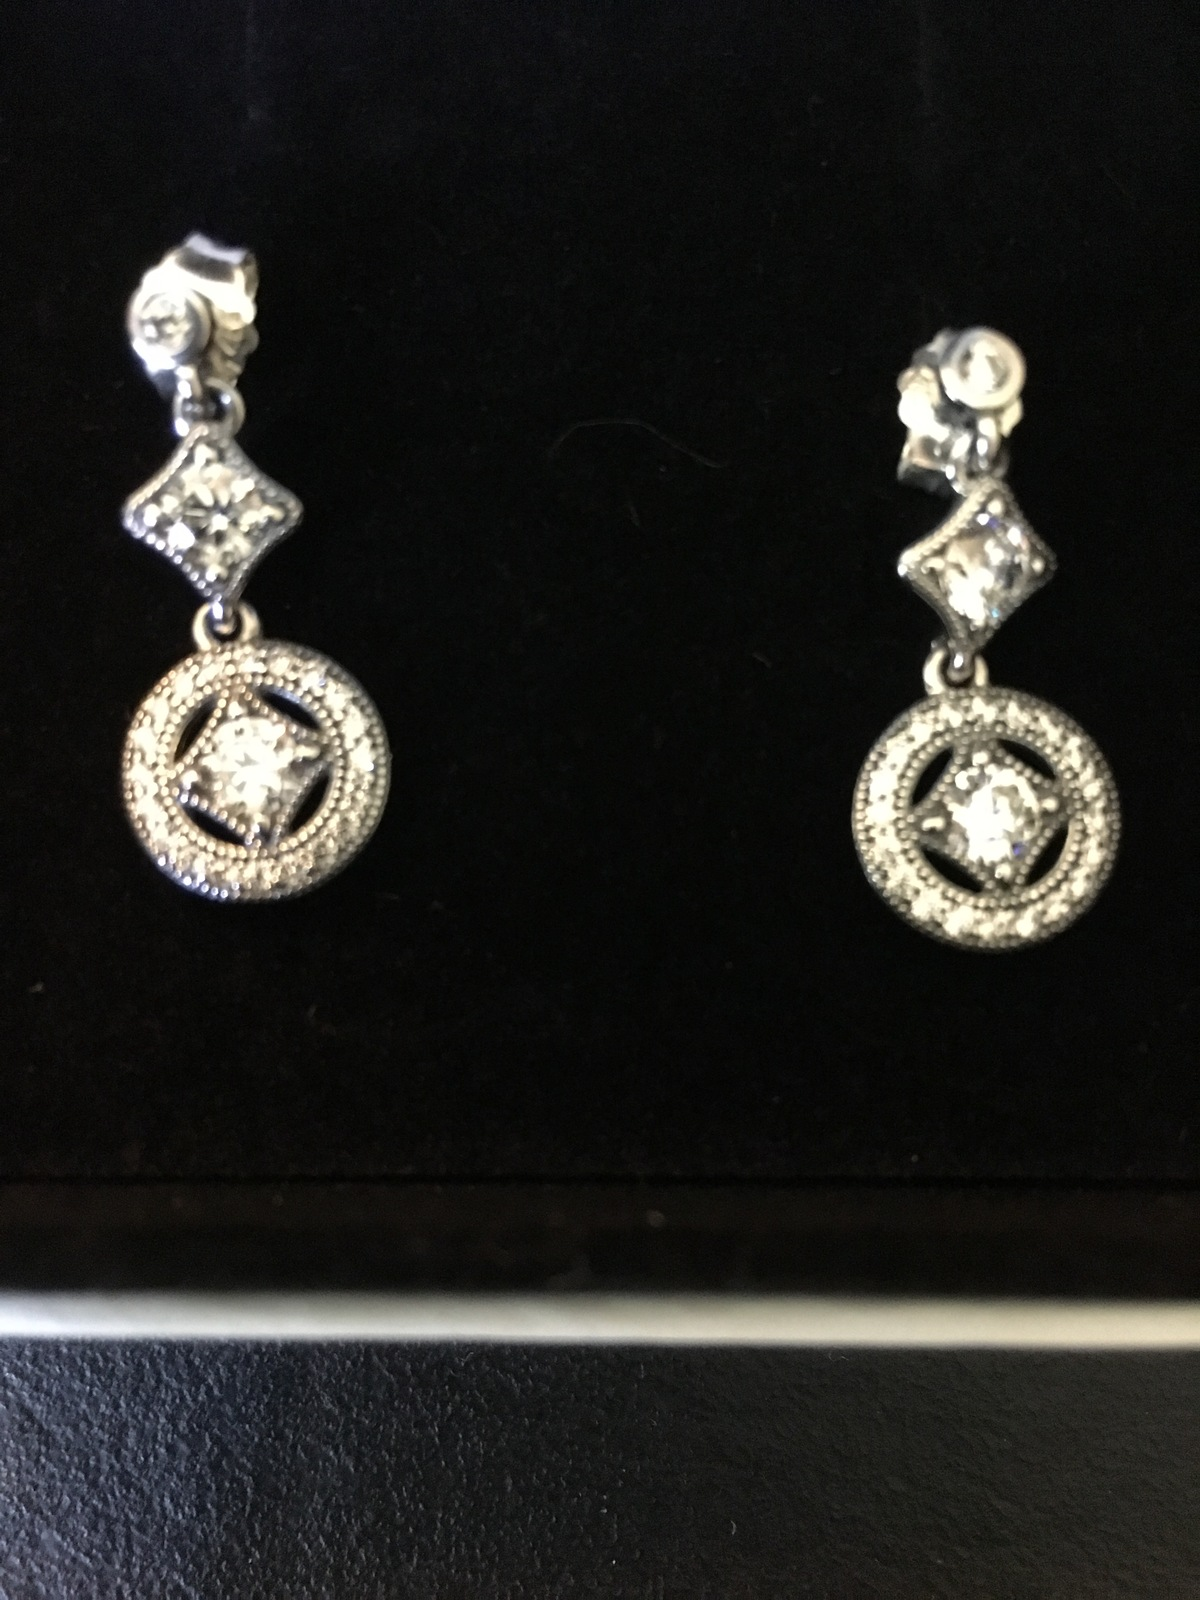 0913b2199 Img 9399. Img 9399. Previous. Genuine Pandora .925 Sterling Silver Vintage  Allure Drop Earrings ...